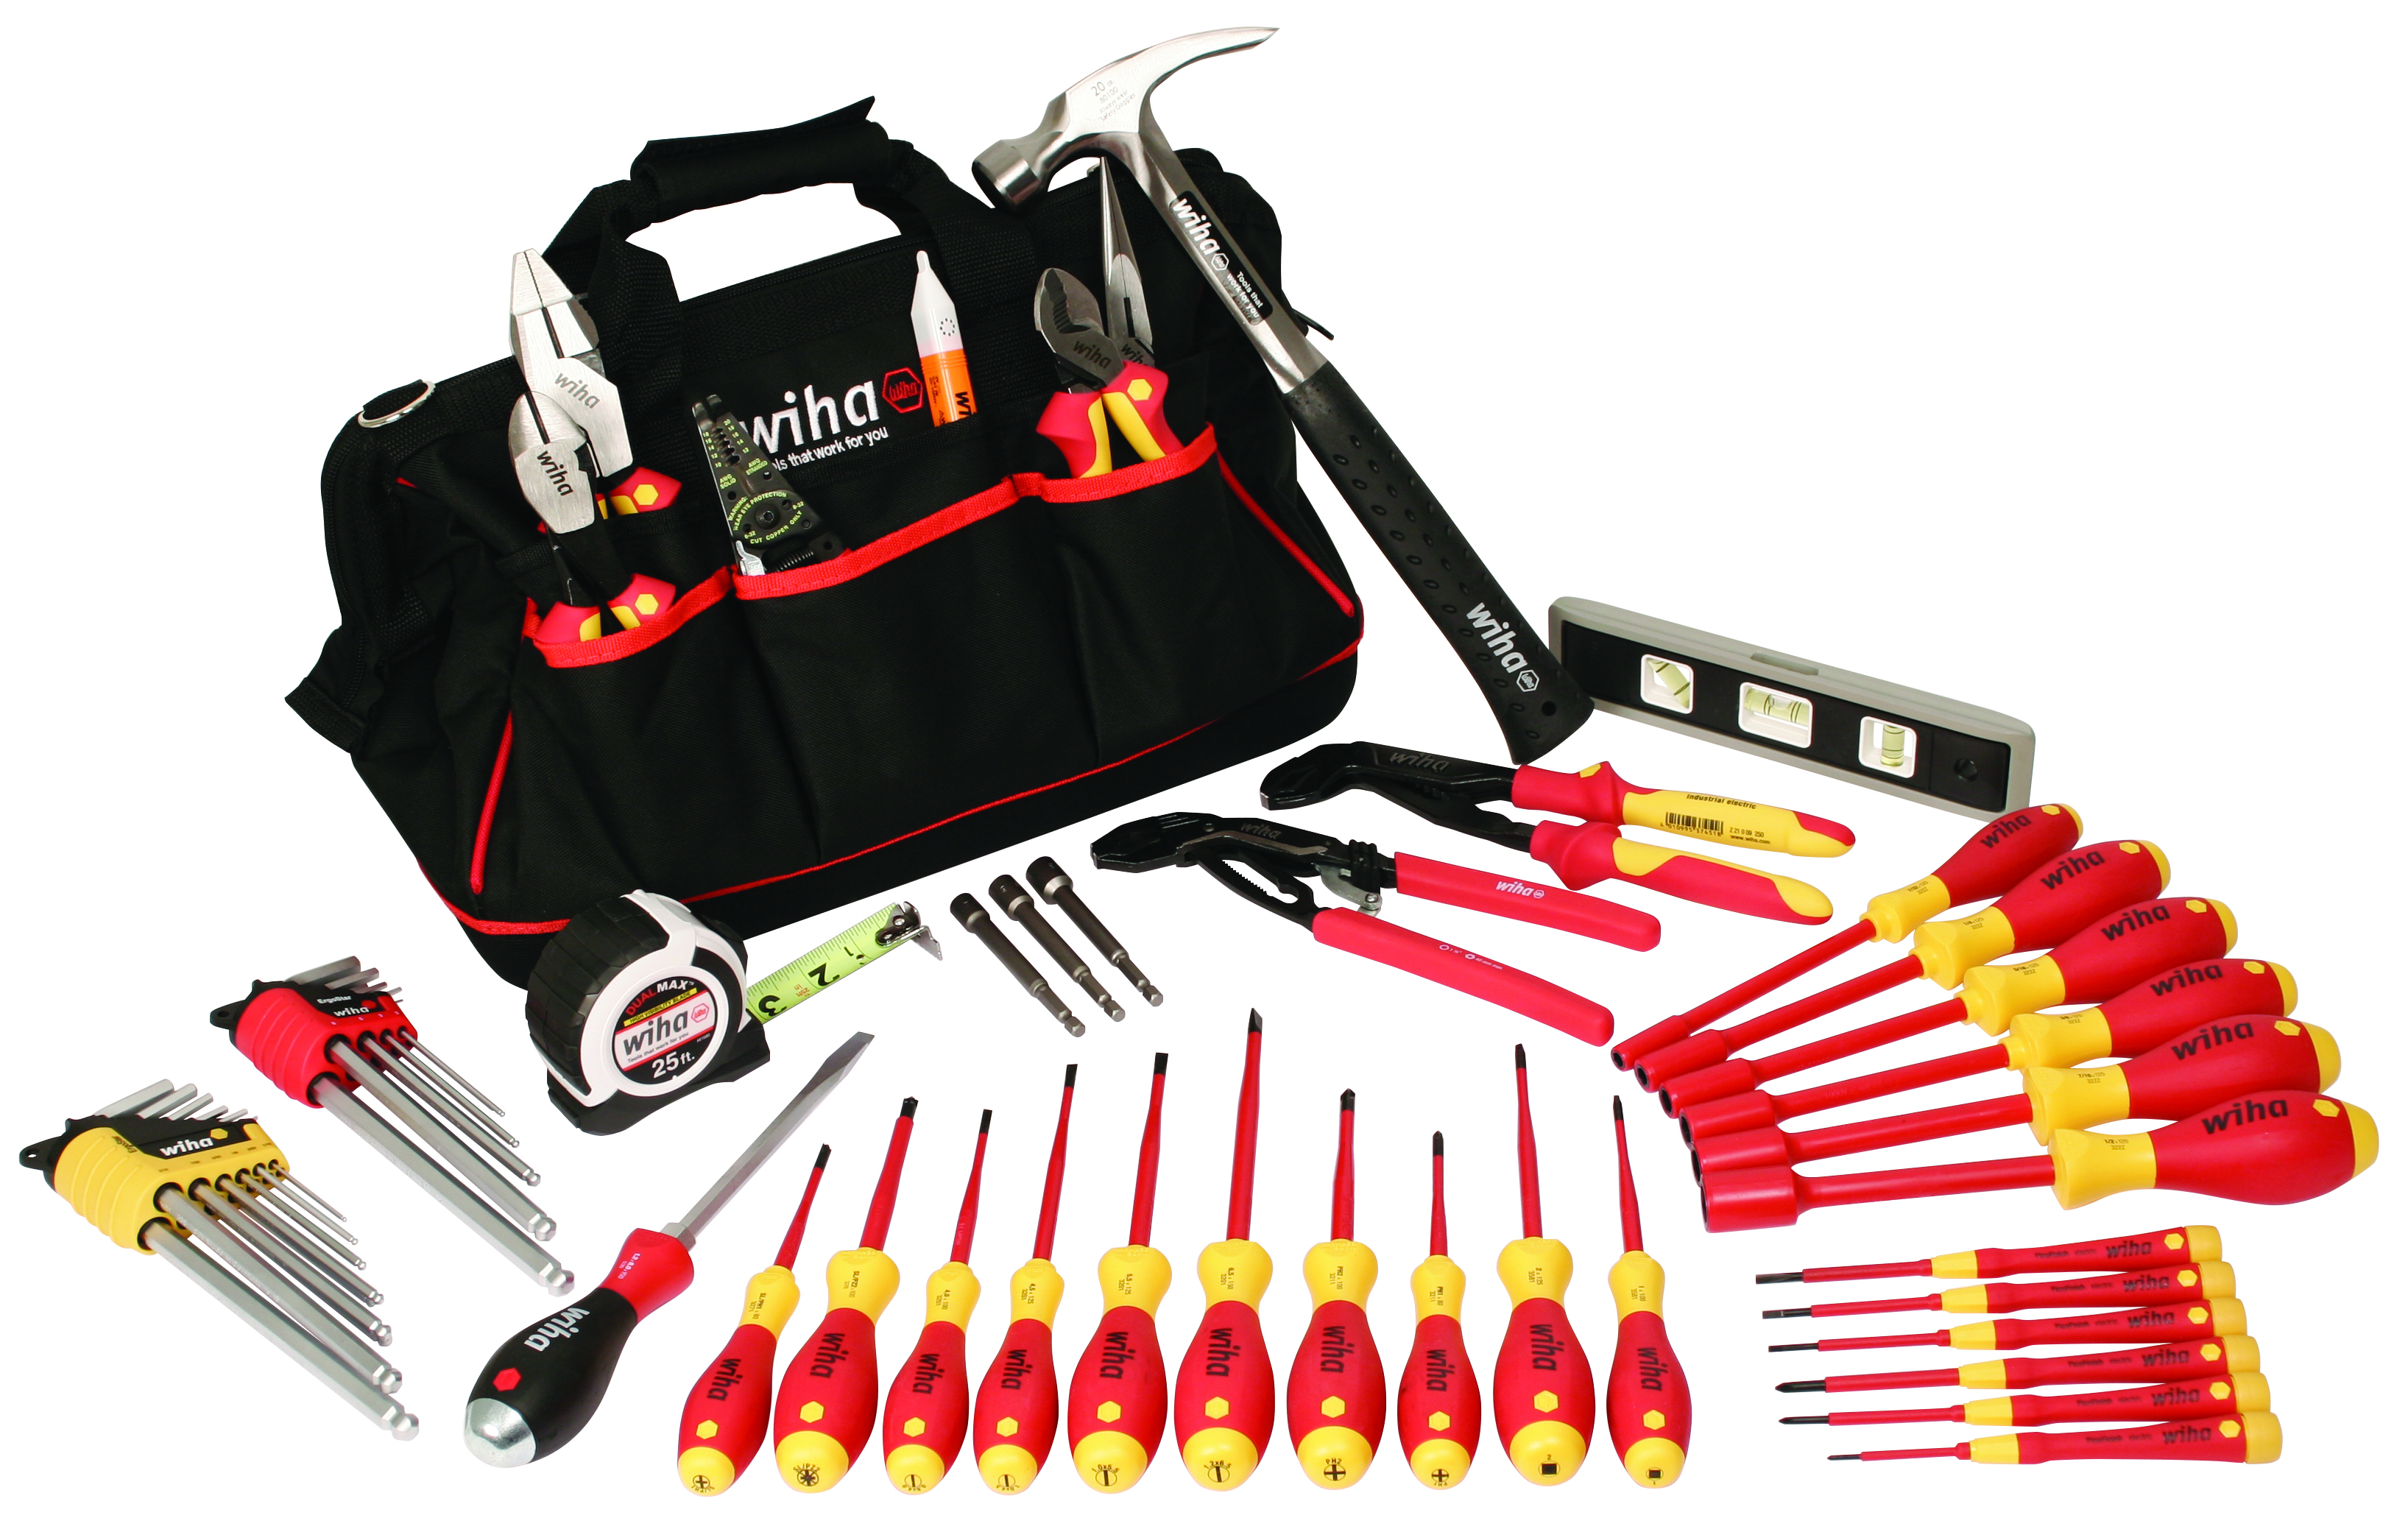 Wiha 32937 Insulated Master Electrician's Set 59Pc